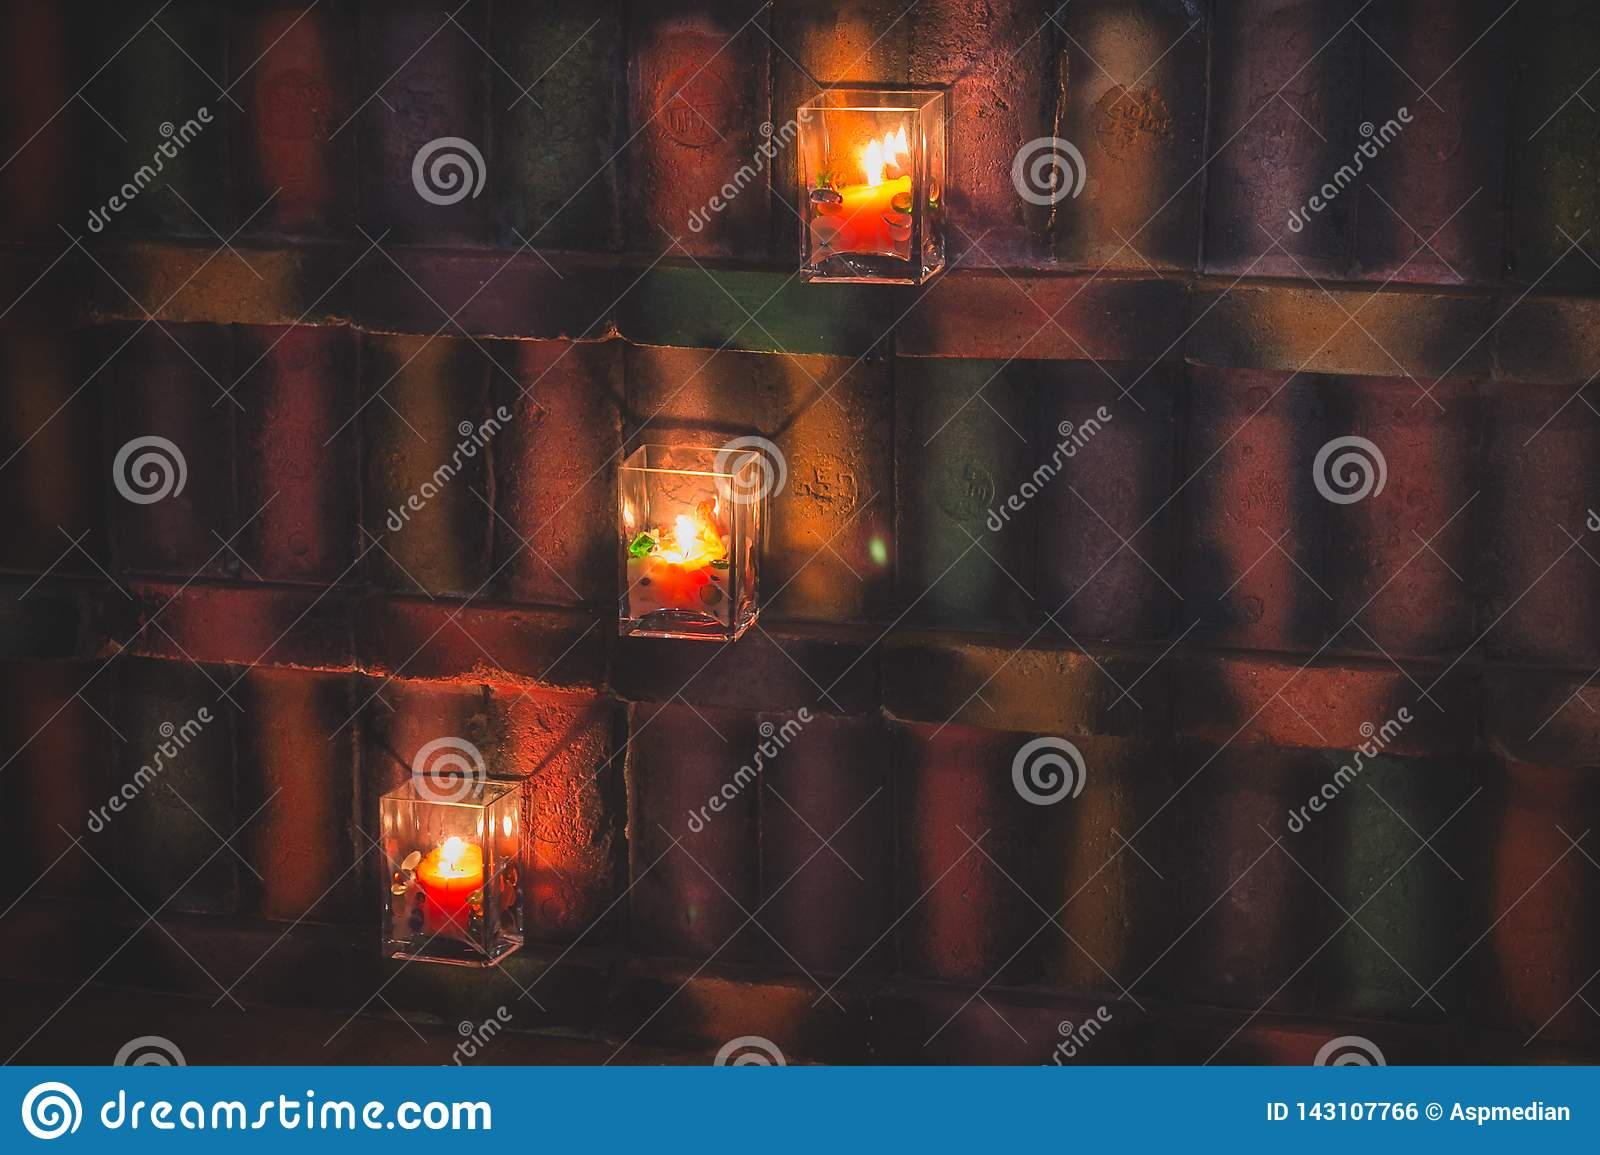 Candles in glass candlesticks illuminate a colorful wall in vintage style